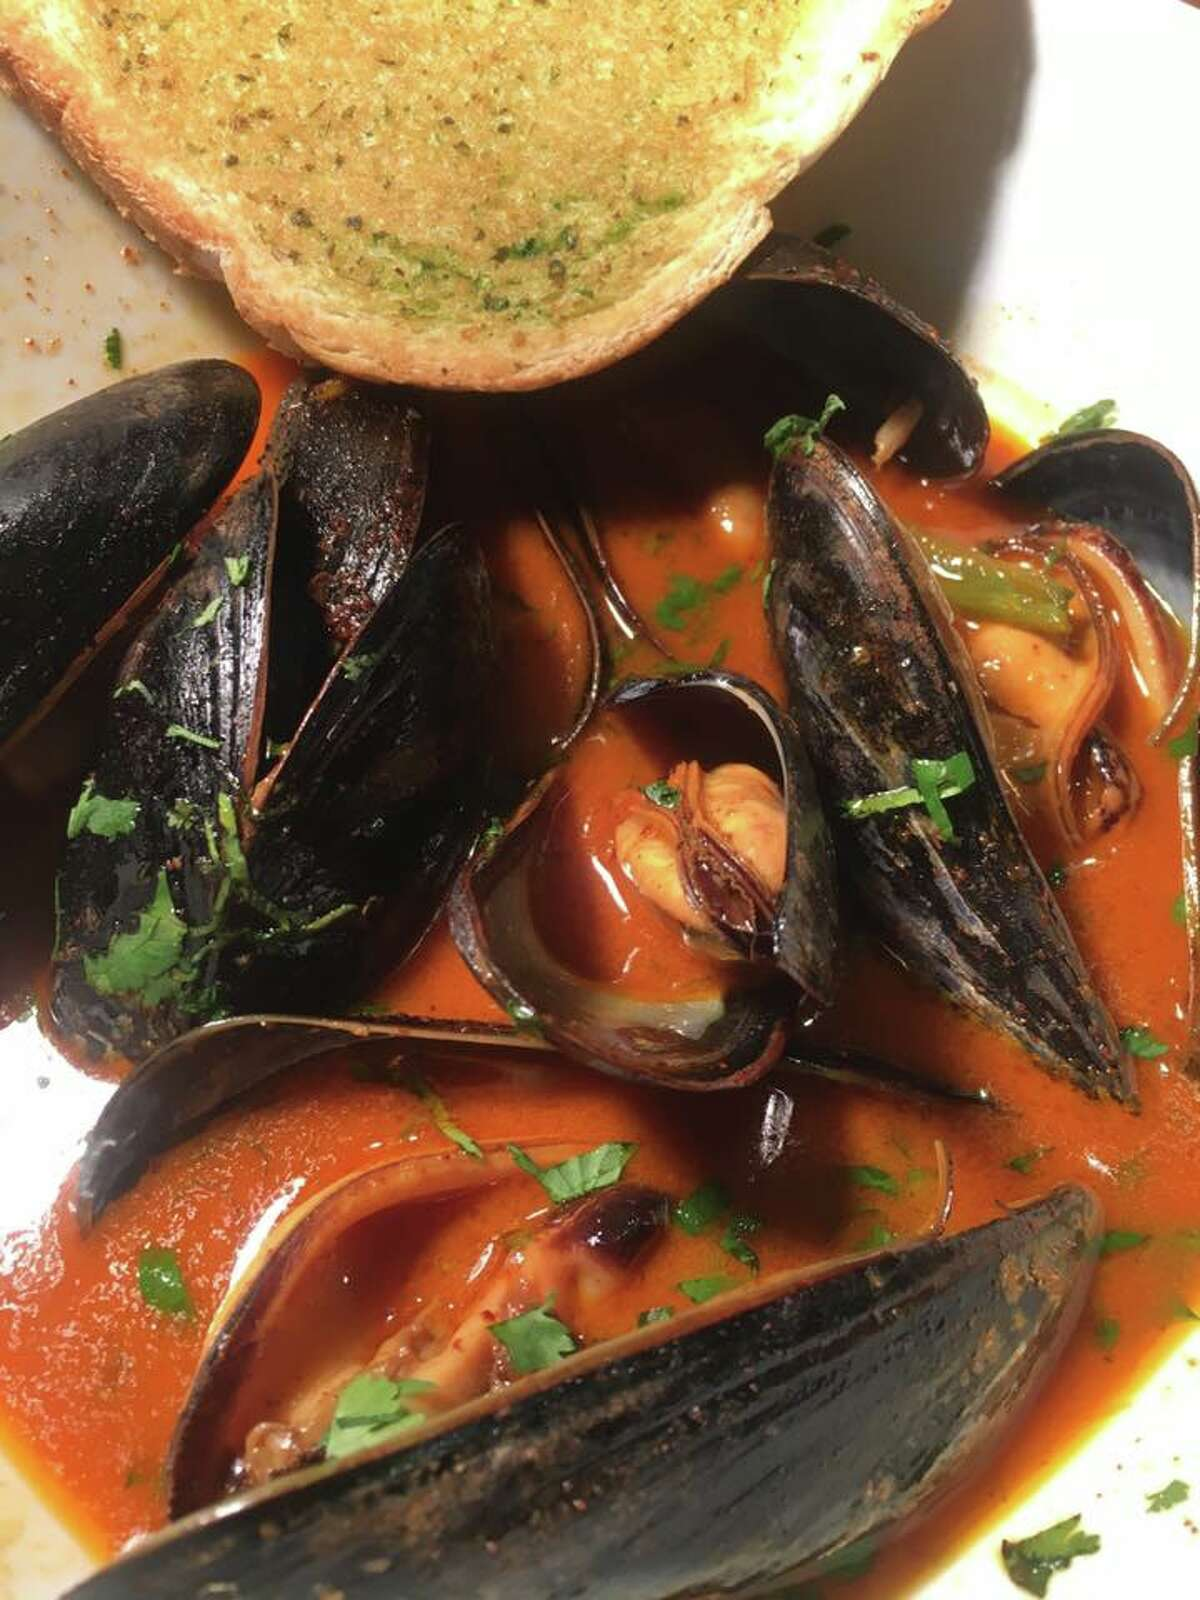 Mussels from Reef